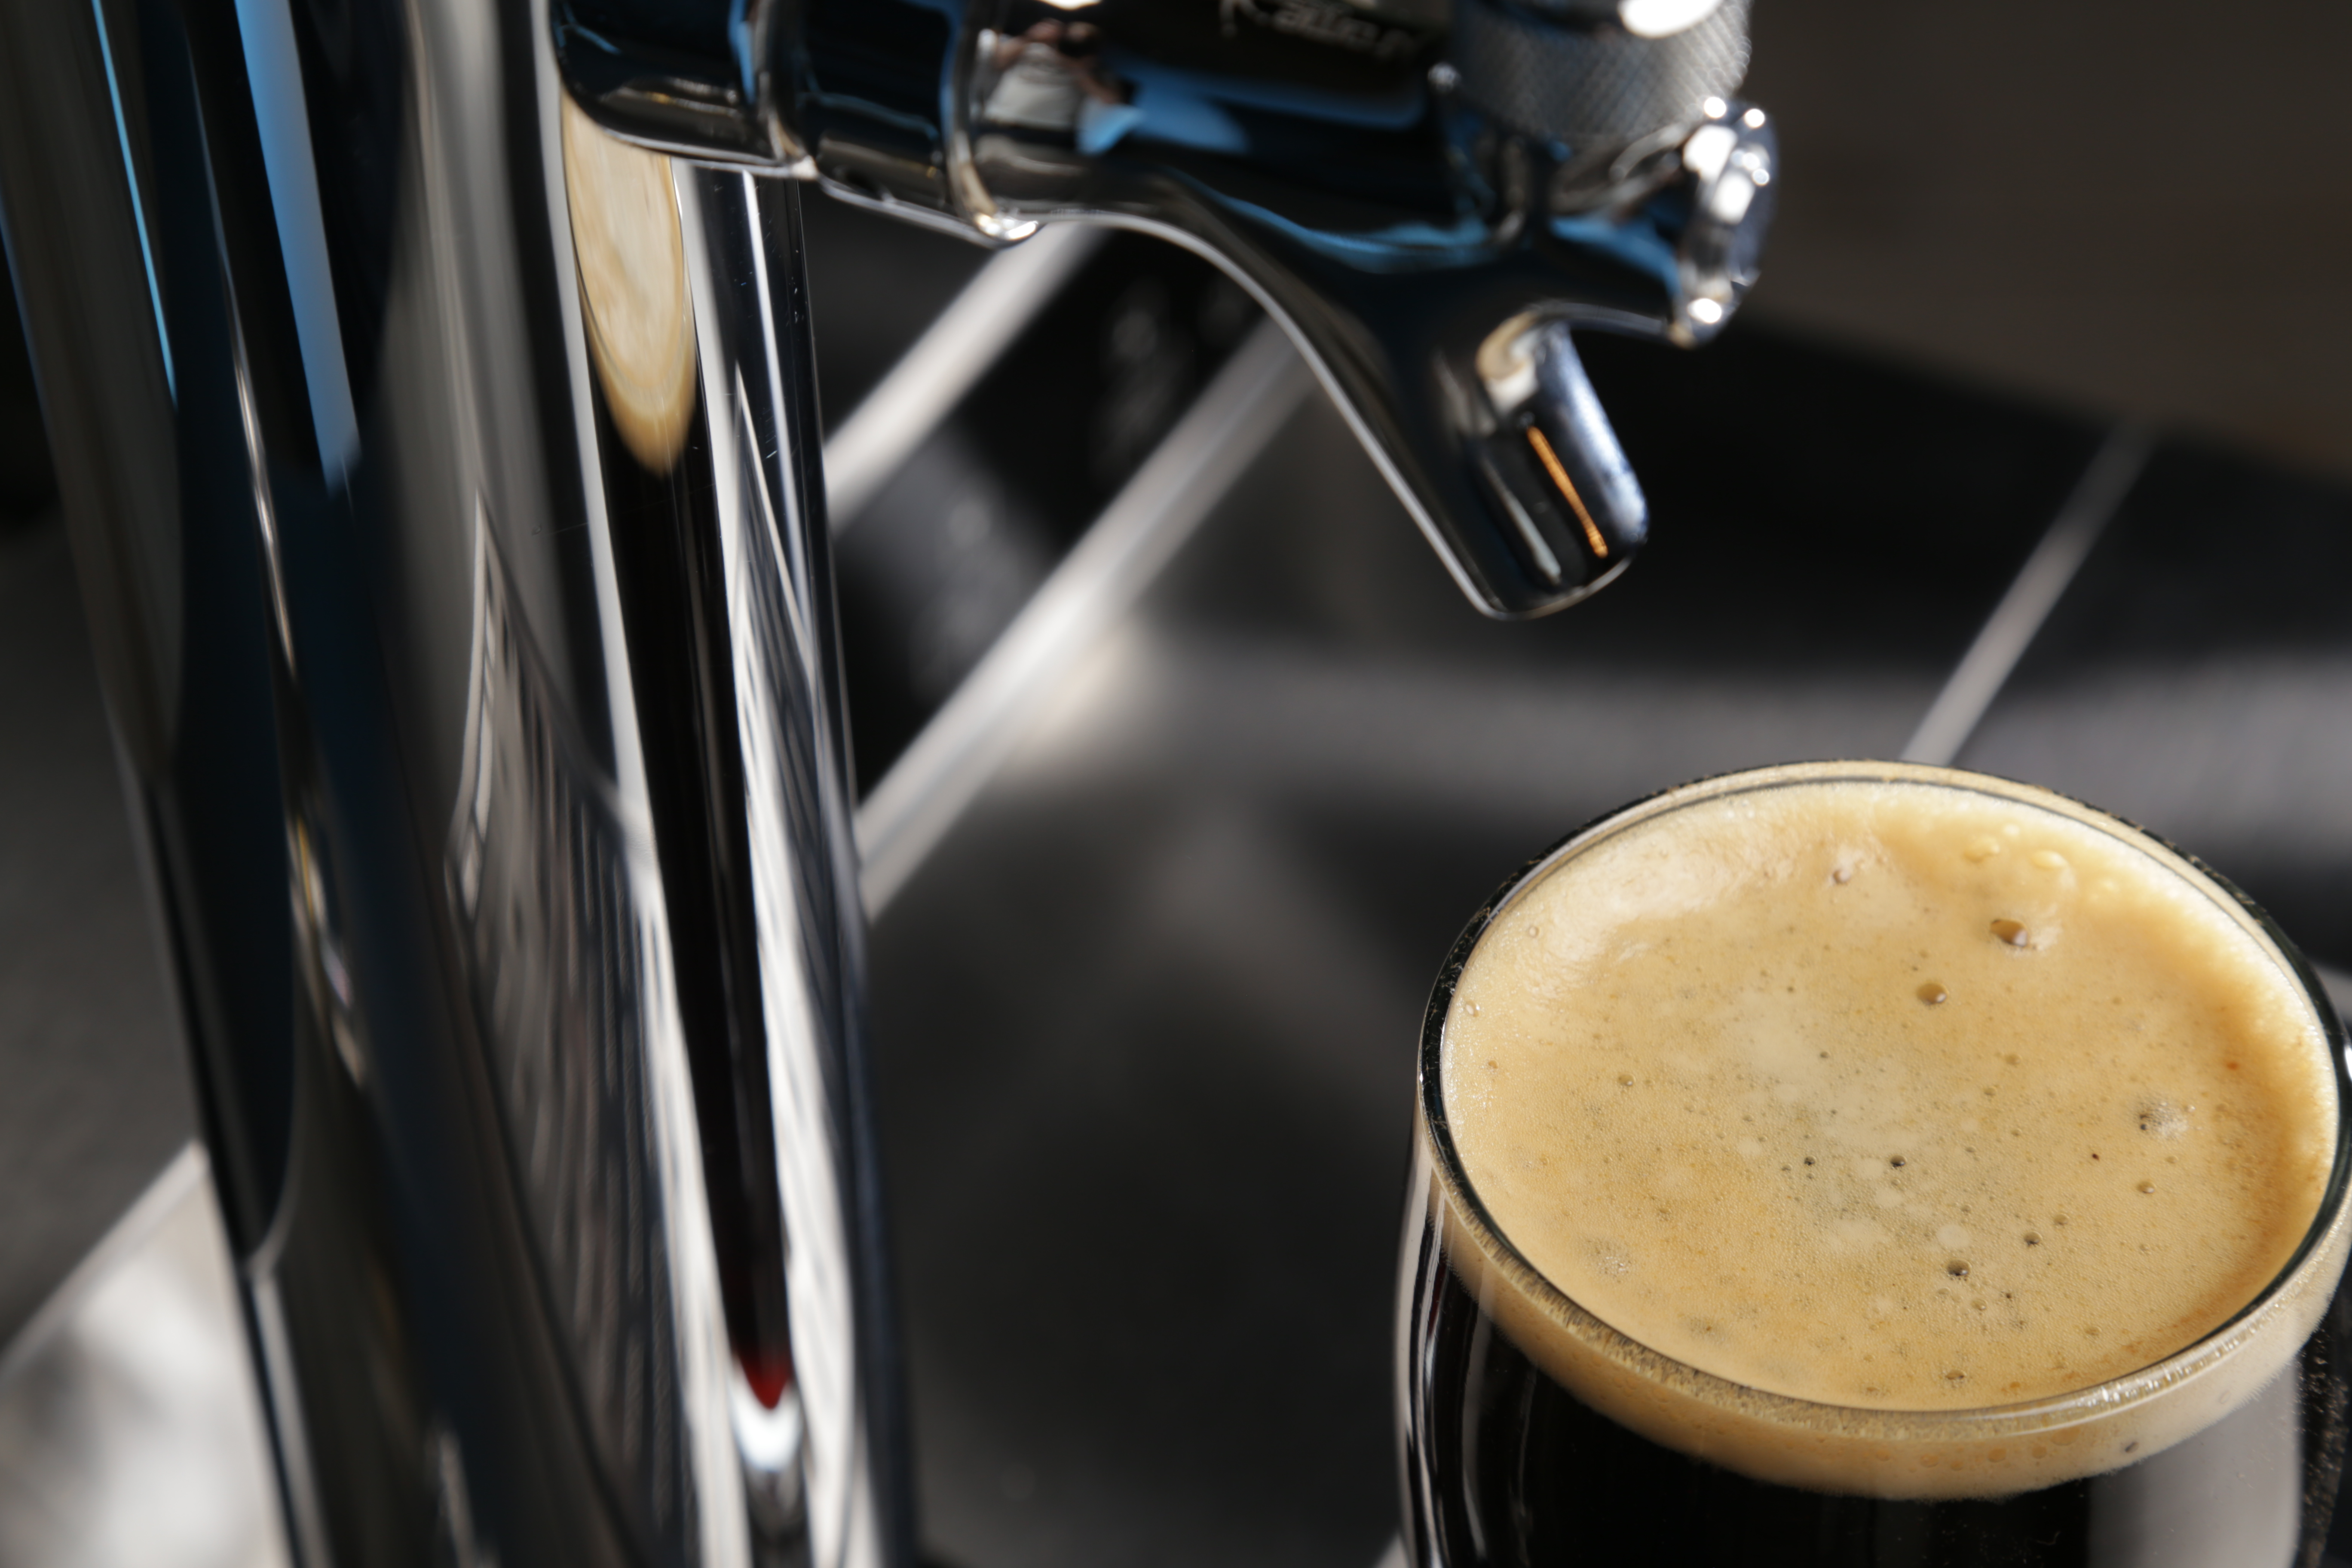 Whirlpool is debuting a new beer system exclusively through Indiegogo.